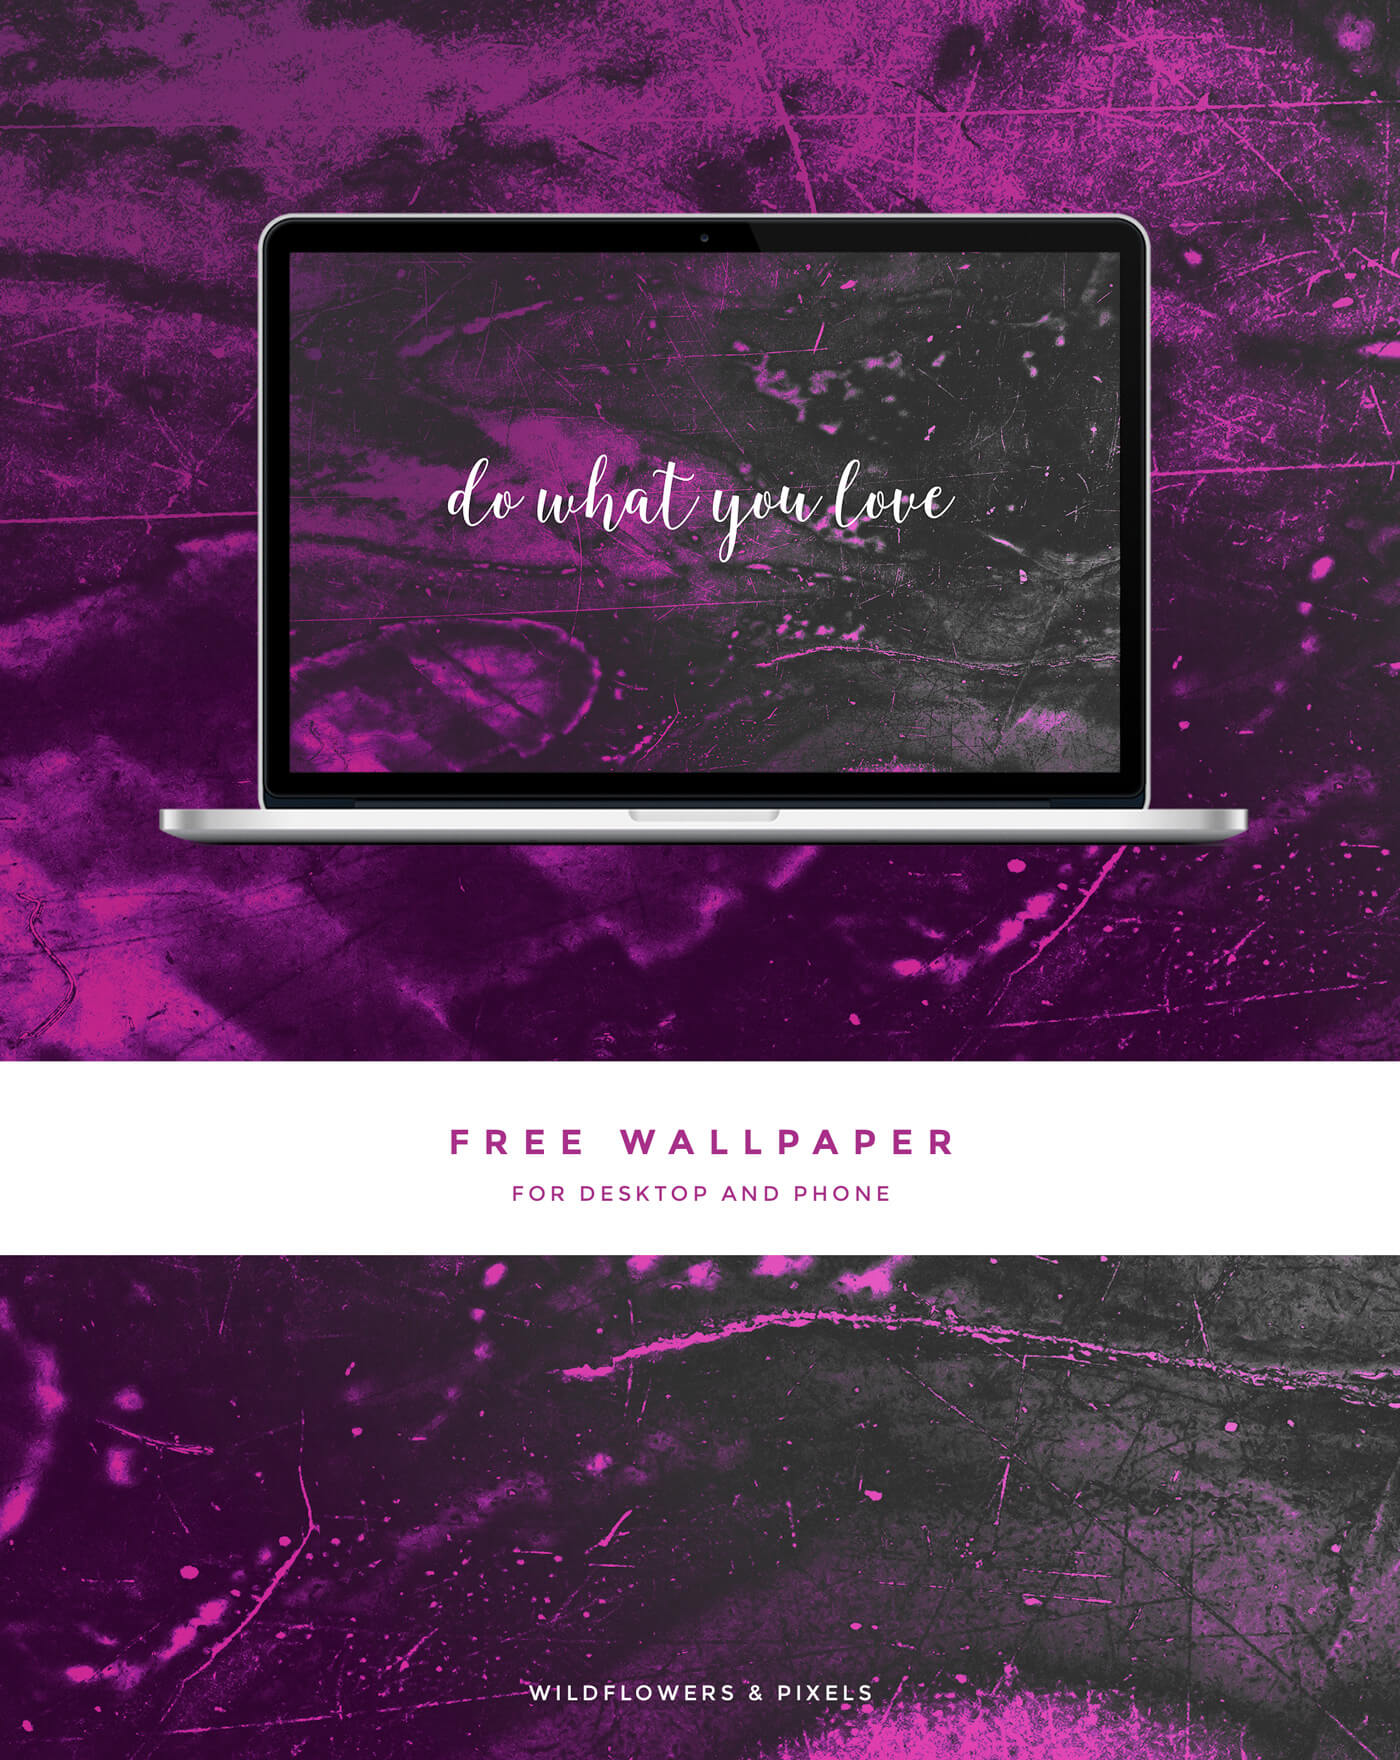 Do what you love Free wallpaper for your desktop and phone from Wildflowers & Pixels